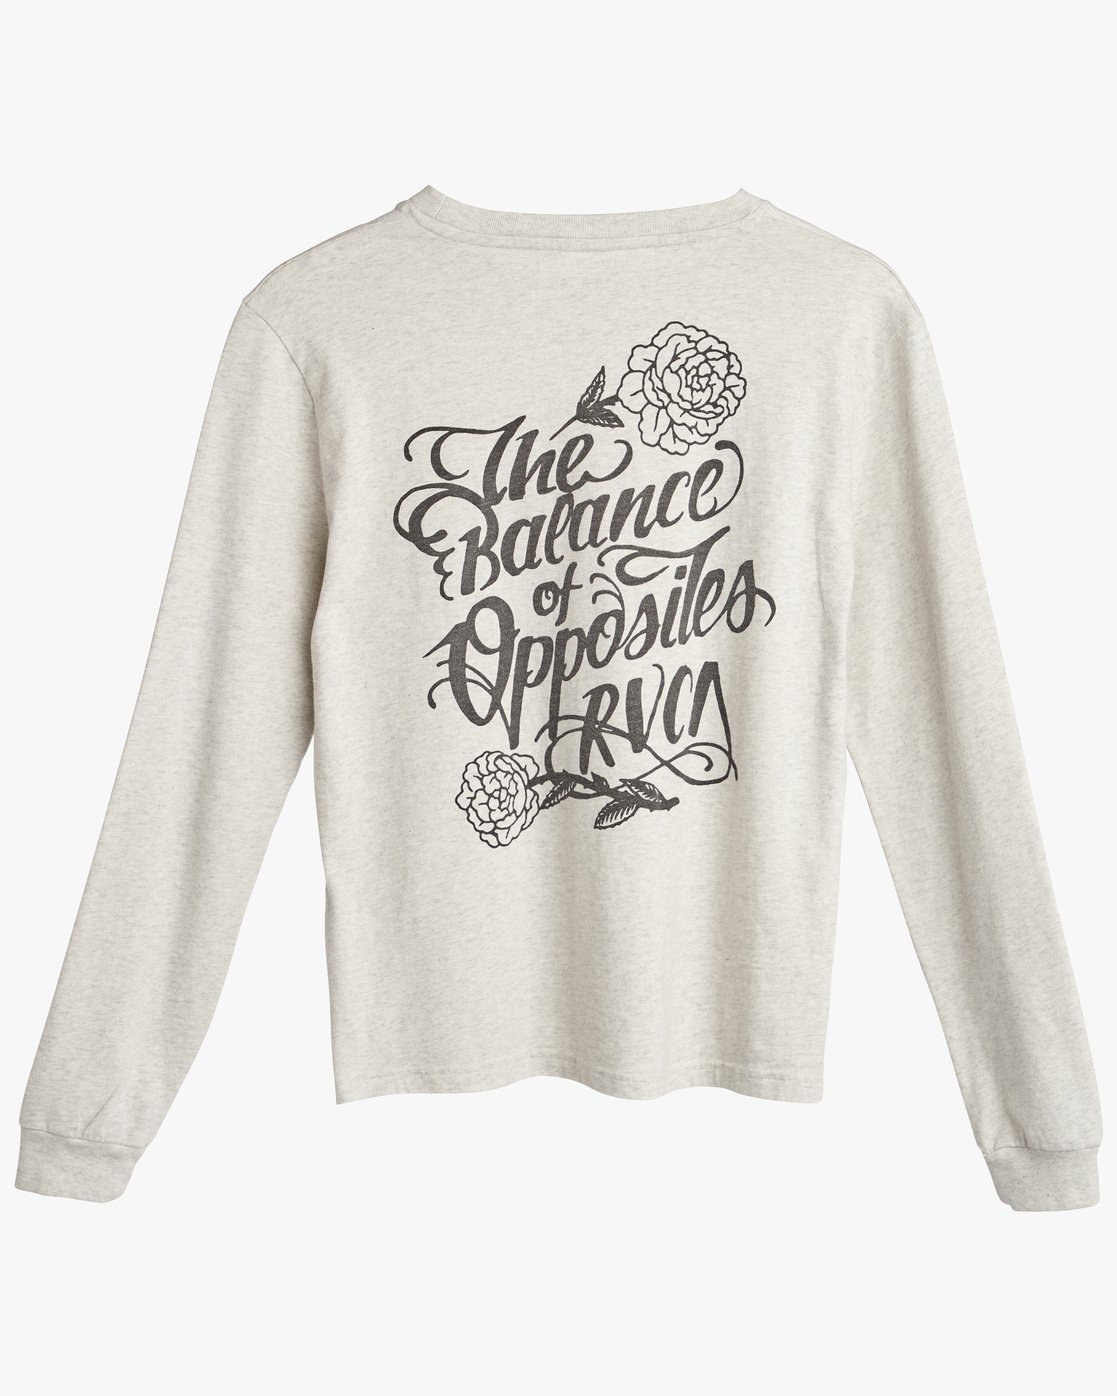 0 FLOWER POWER LS White L3LSRFRVF8 RVCA